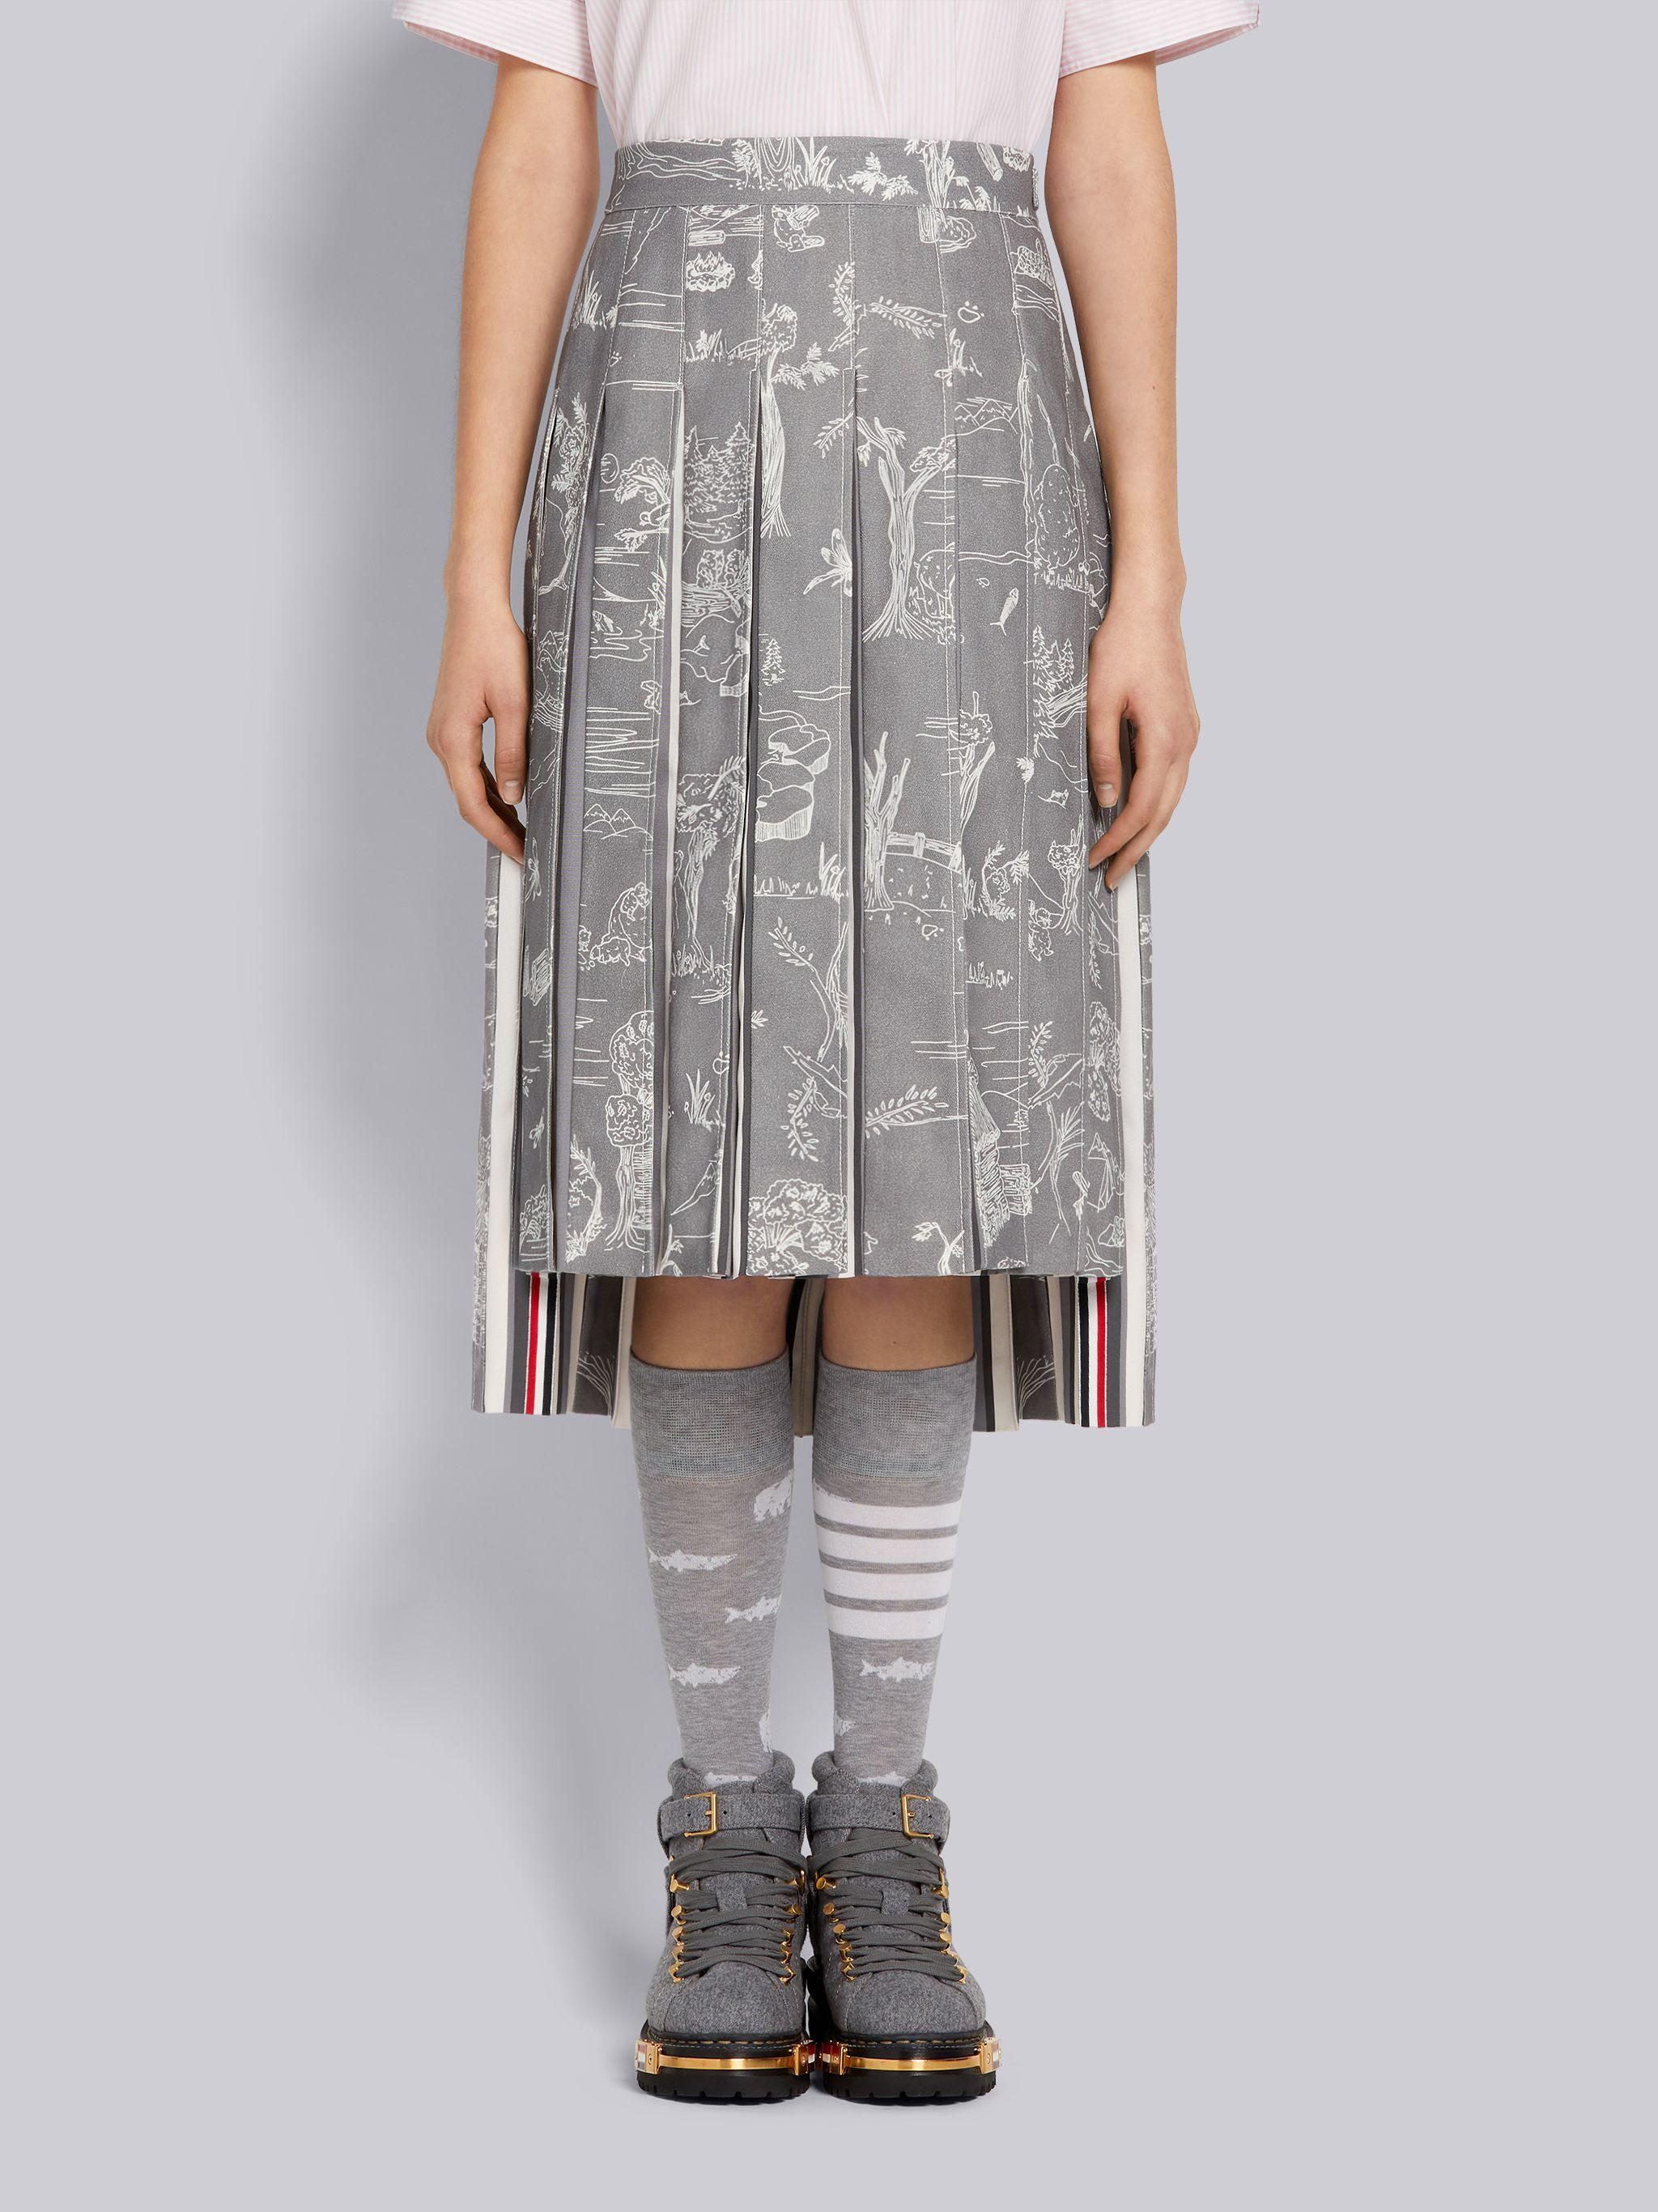 Medium Grey Animal Camp Toile Cotton Canvas Dropped Back Pleated Below-the-Knee Skirt